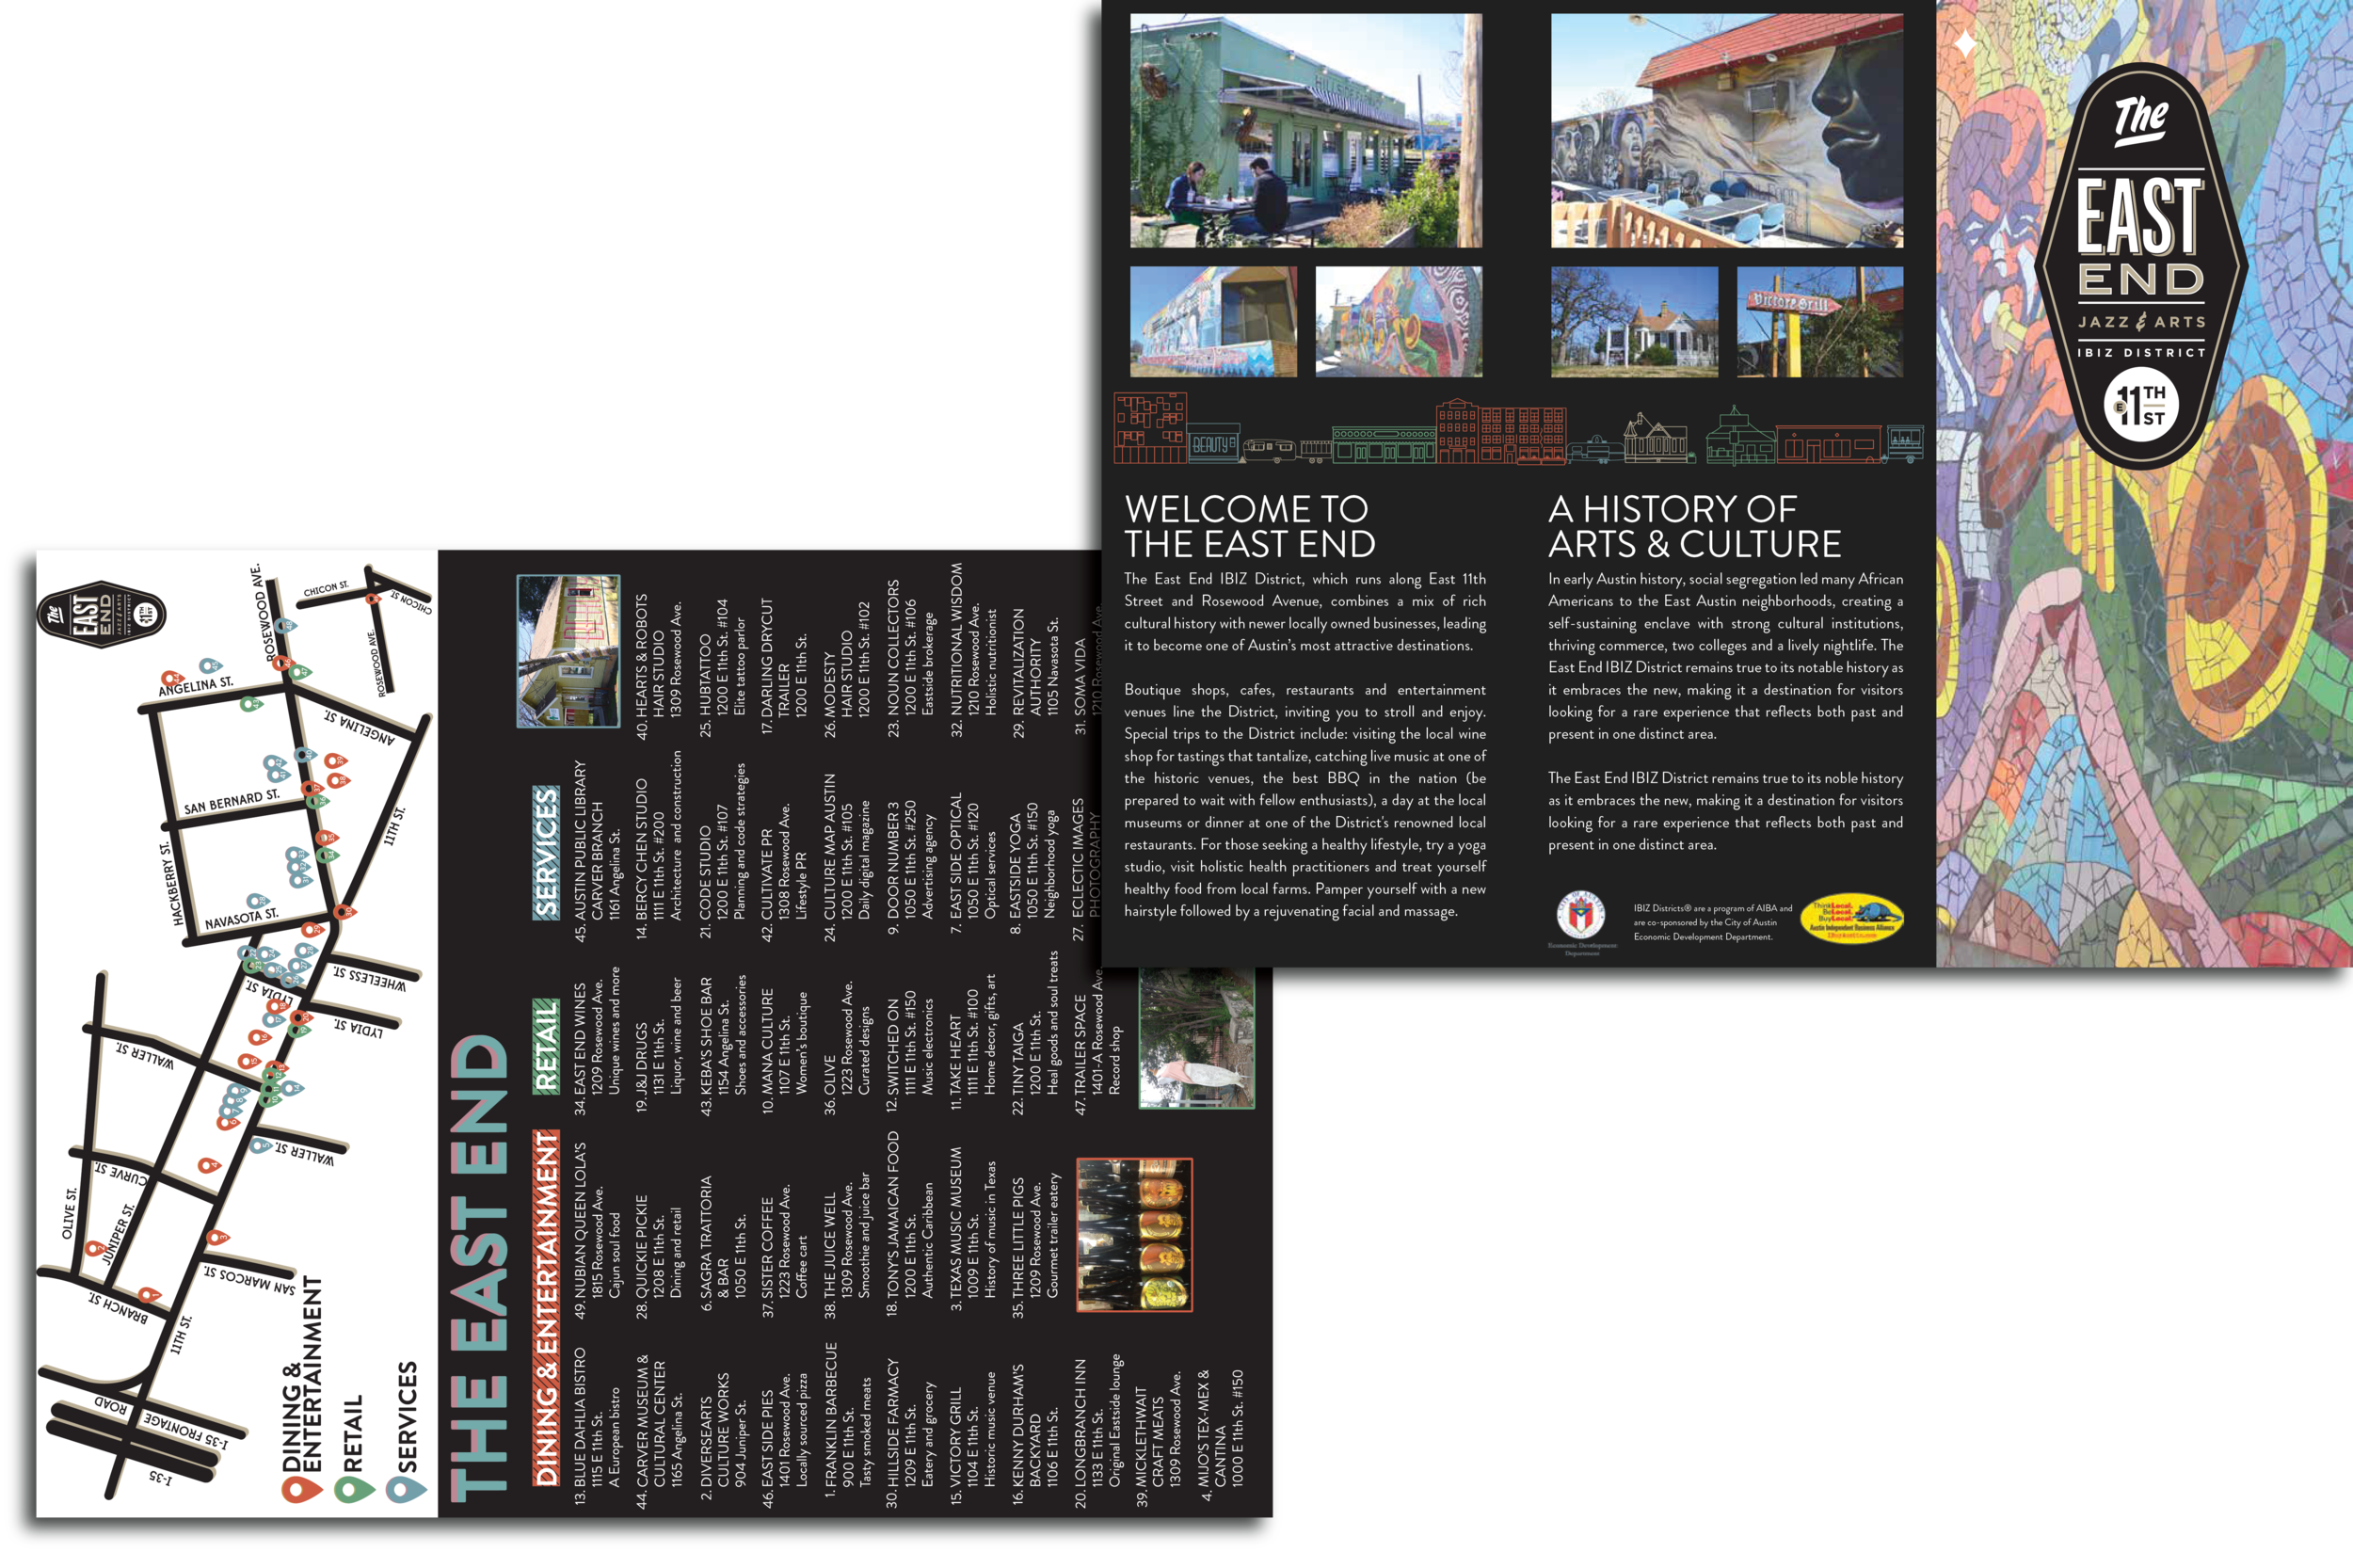 East End Business District Guide   A directory for Austin's East End IBIZ District.